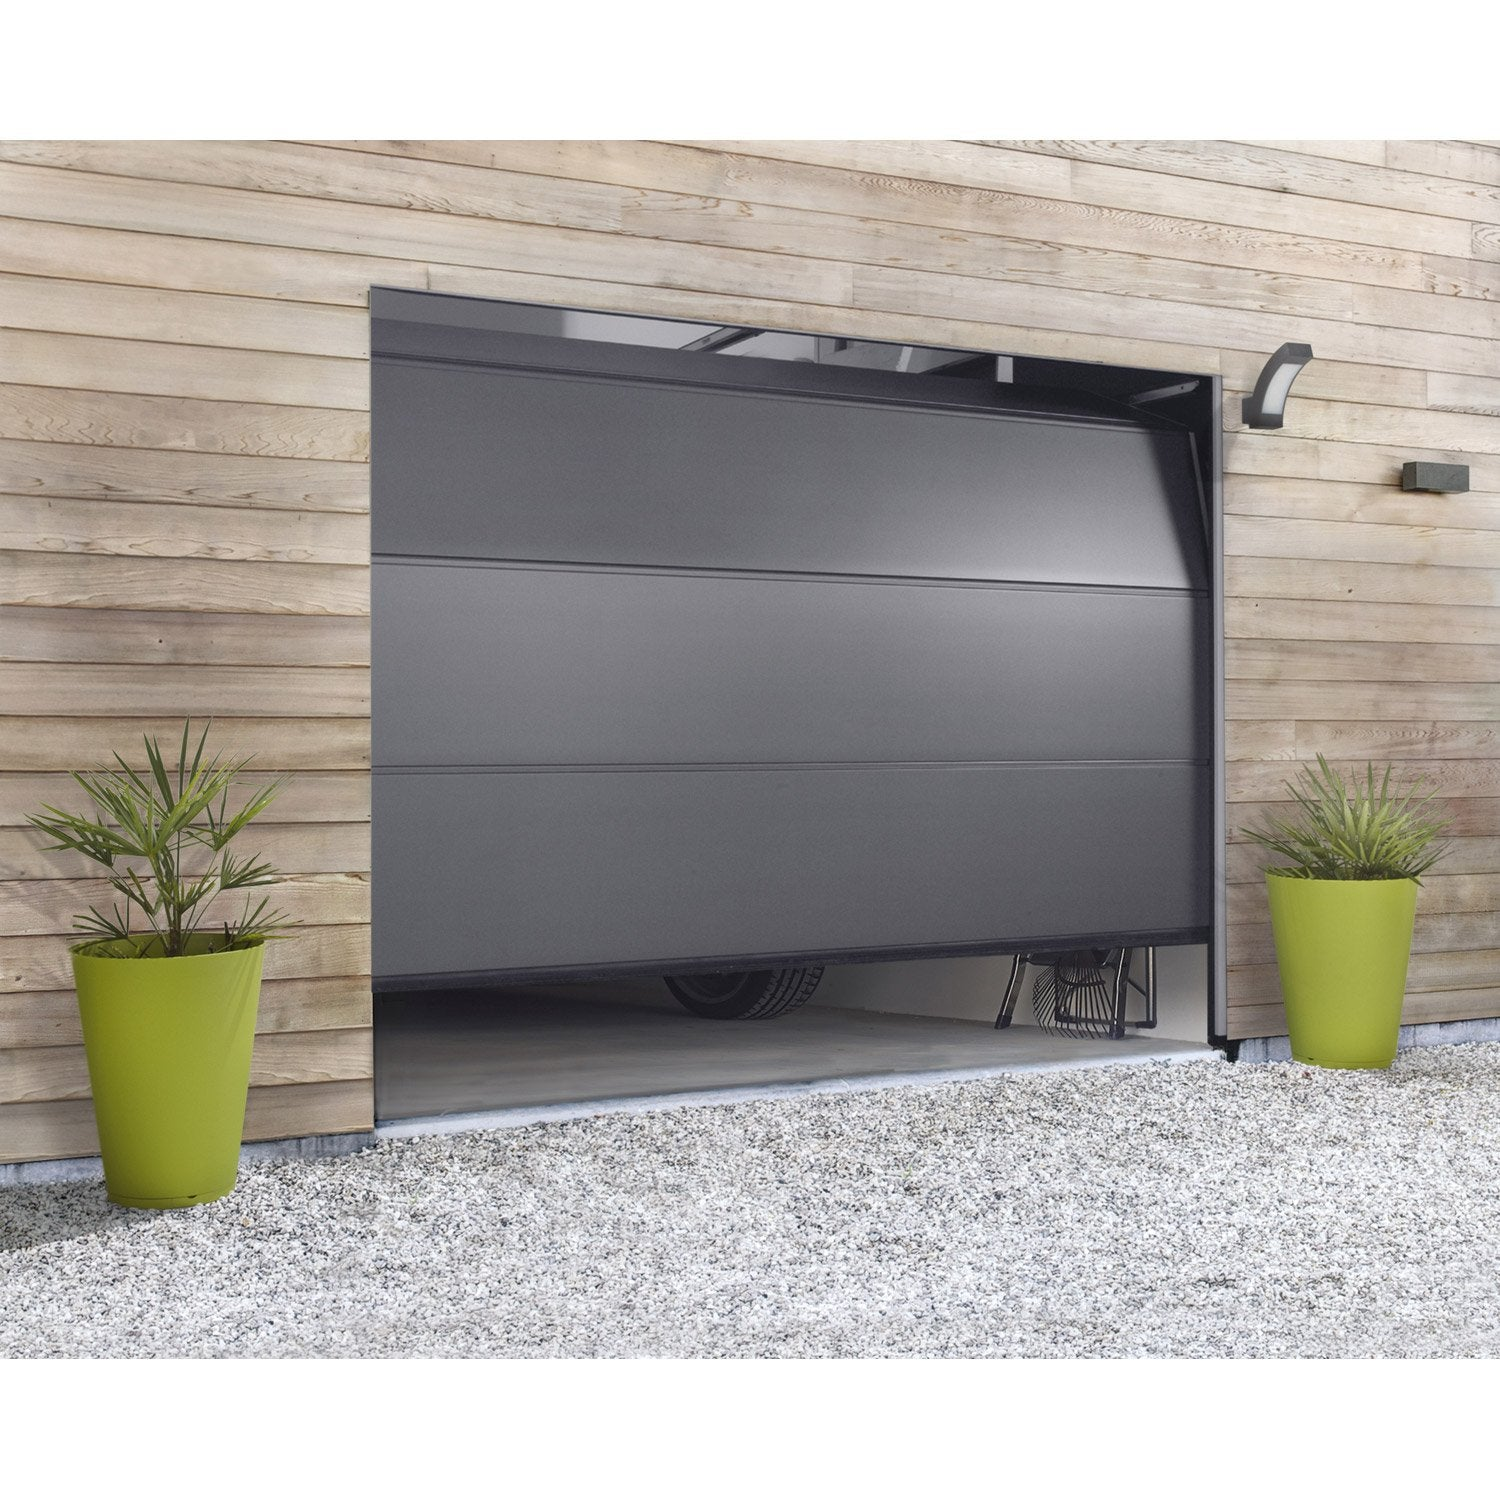 Porte entree hormann leroy merlin pm27 jornalagora for Porte de garage sectionnelle 250 x 200